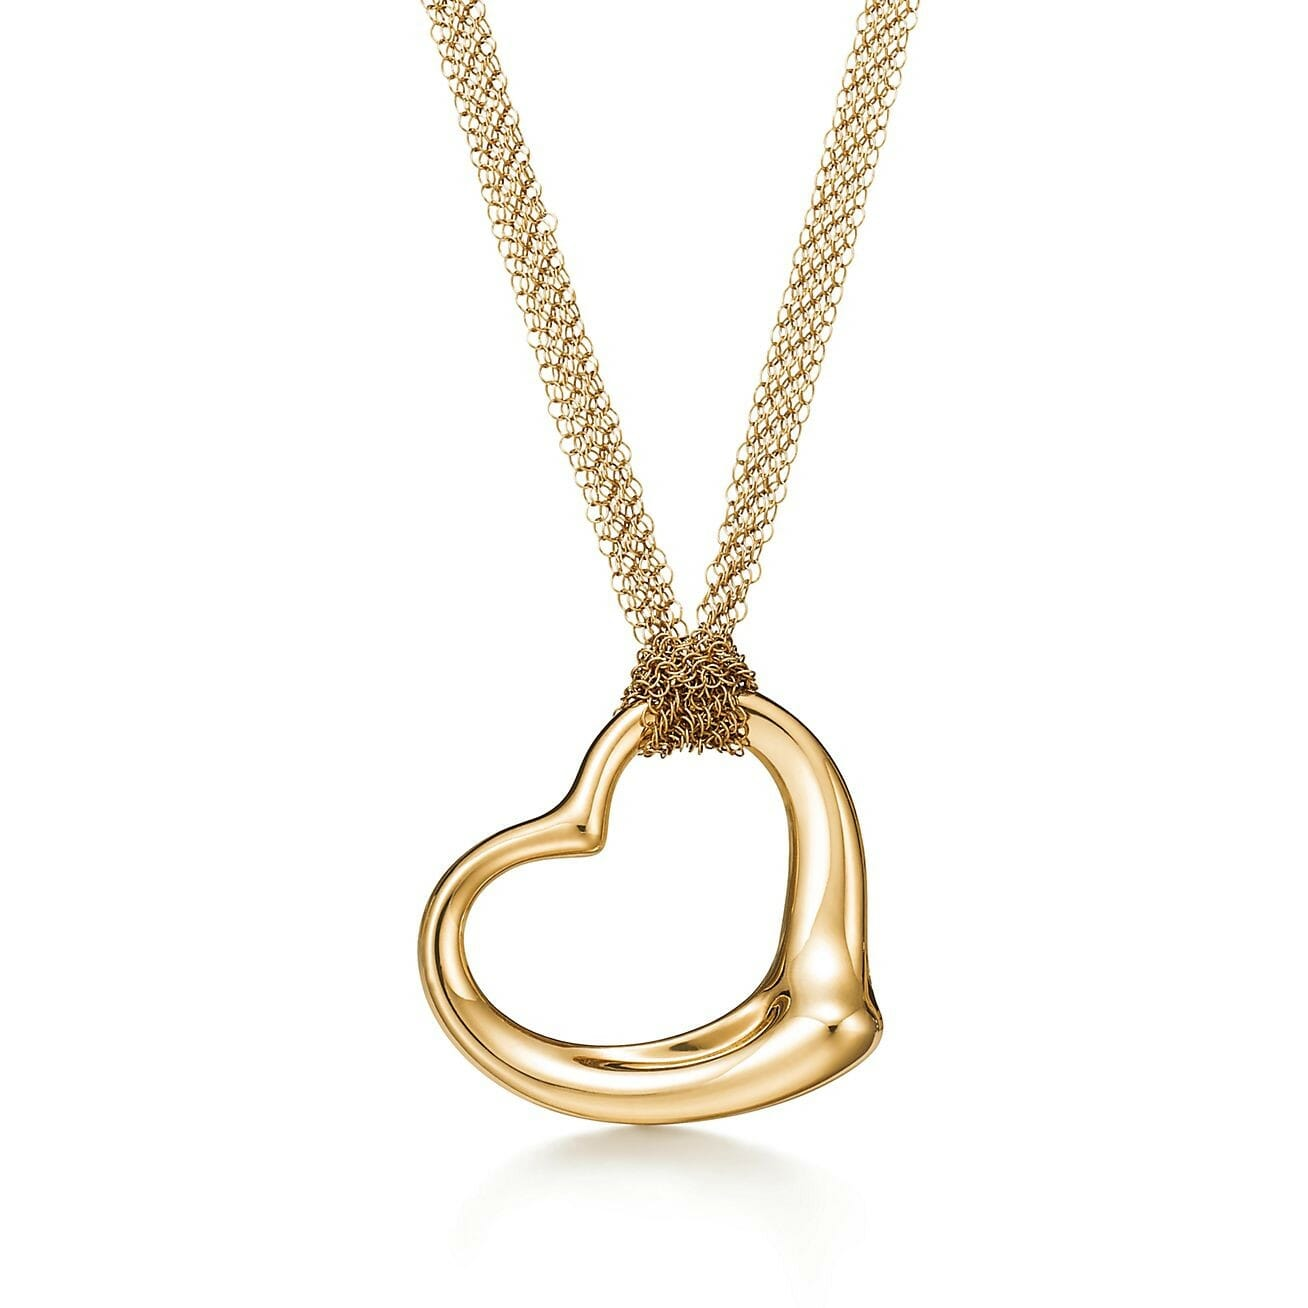 Mothers Day Gift ideas from Newport Living and Lifestyles Tiffany & Co. Elsa Peretti® heart necklace Open Heart Pendant in gold &5200